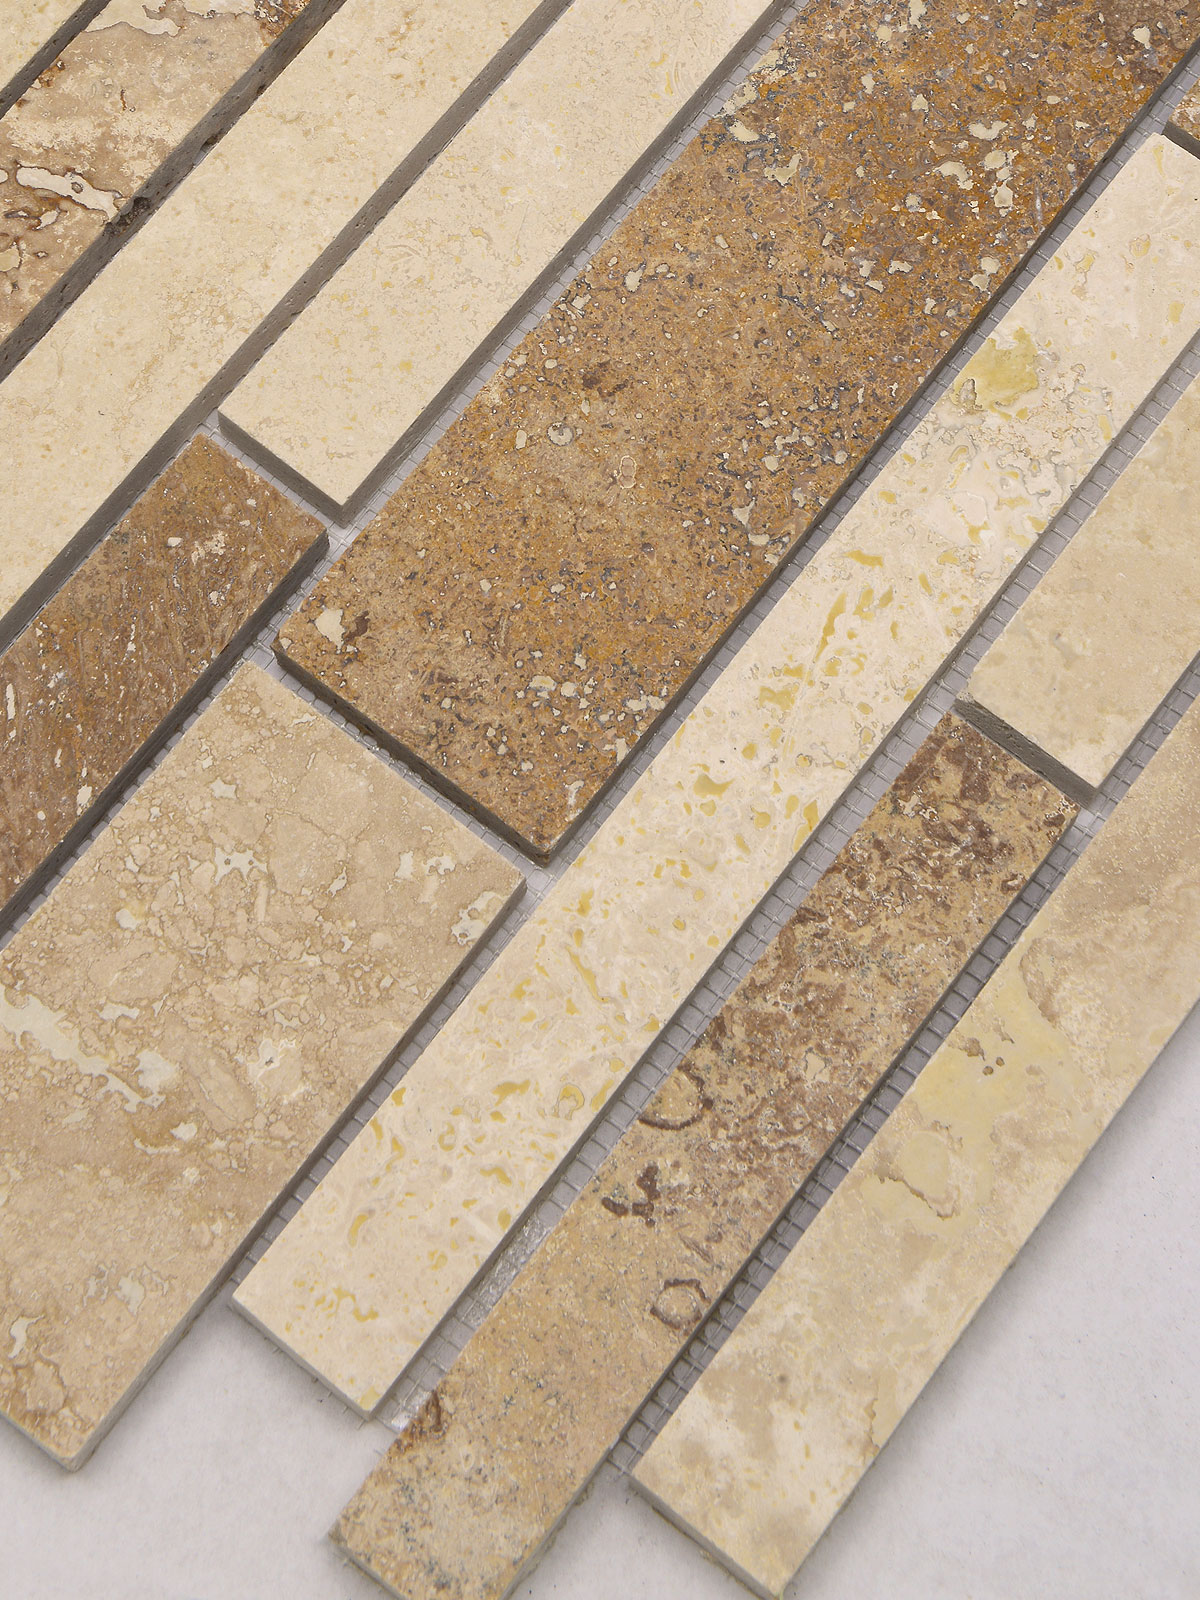 Brown beige travertine subway mosaic backsplash tile BA1024